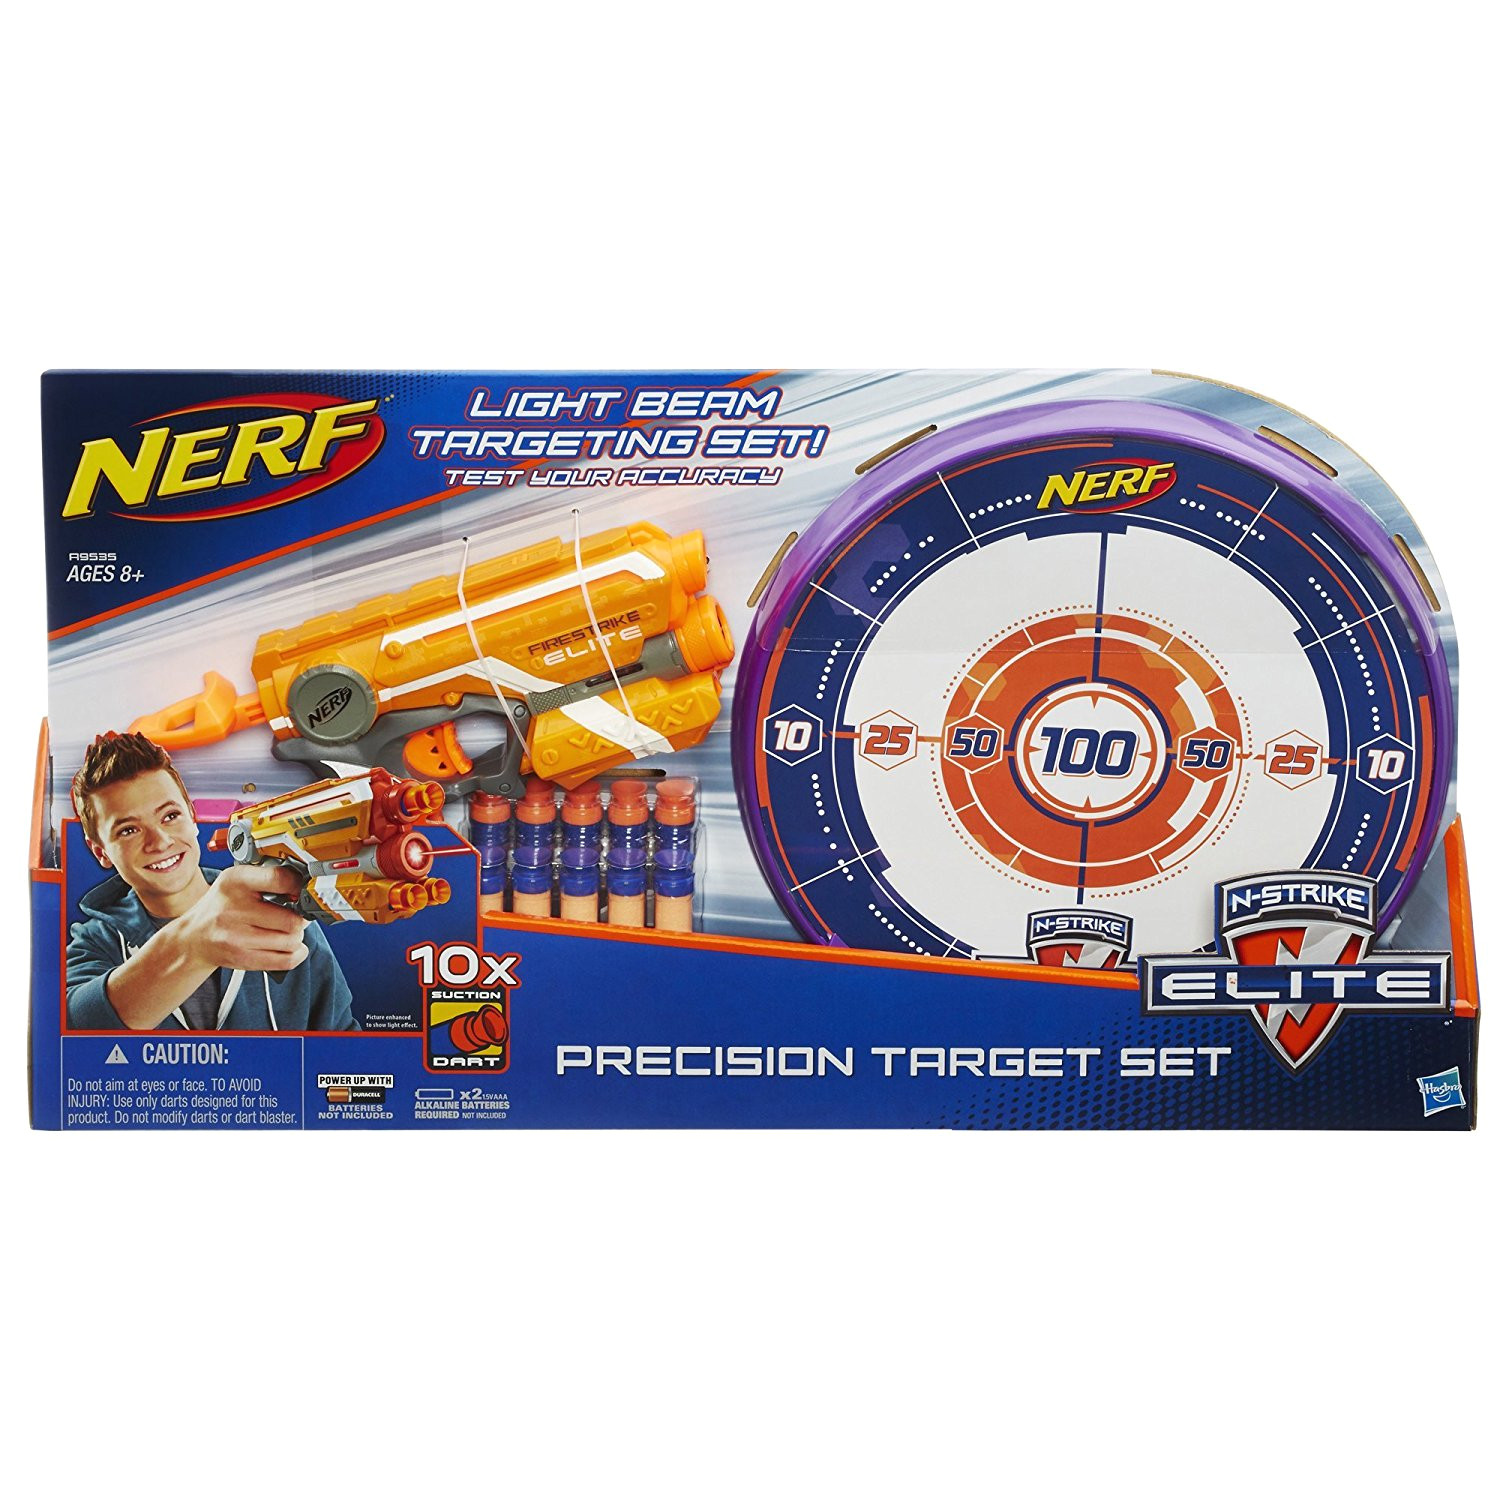 this will be a good gift for 8 years old boys who want to get some target practice in their spare time